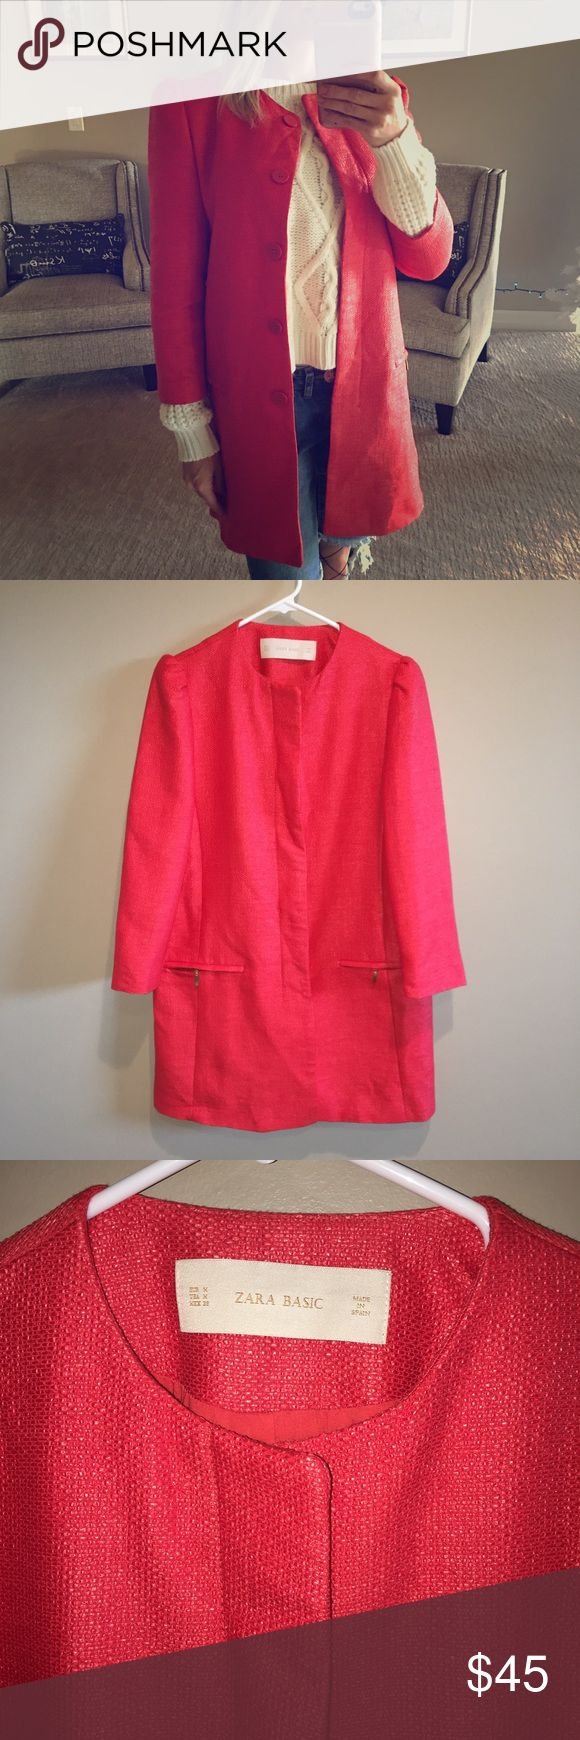 Zara jacket Lightweight woven material, size medium with cropped sleeves and touching on shoulders Zara Jackets & Coats